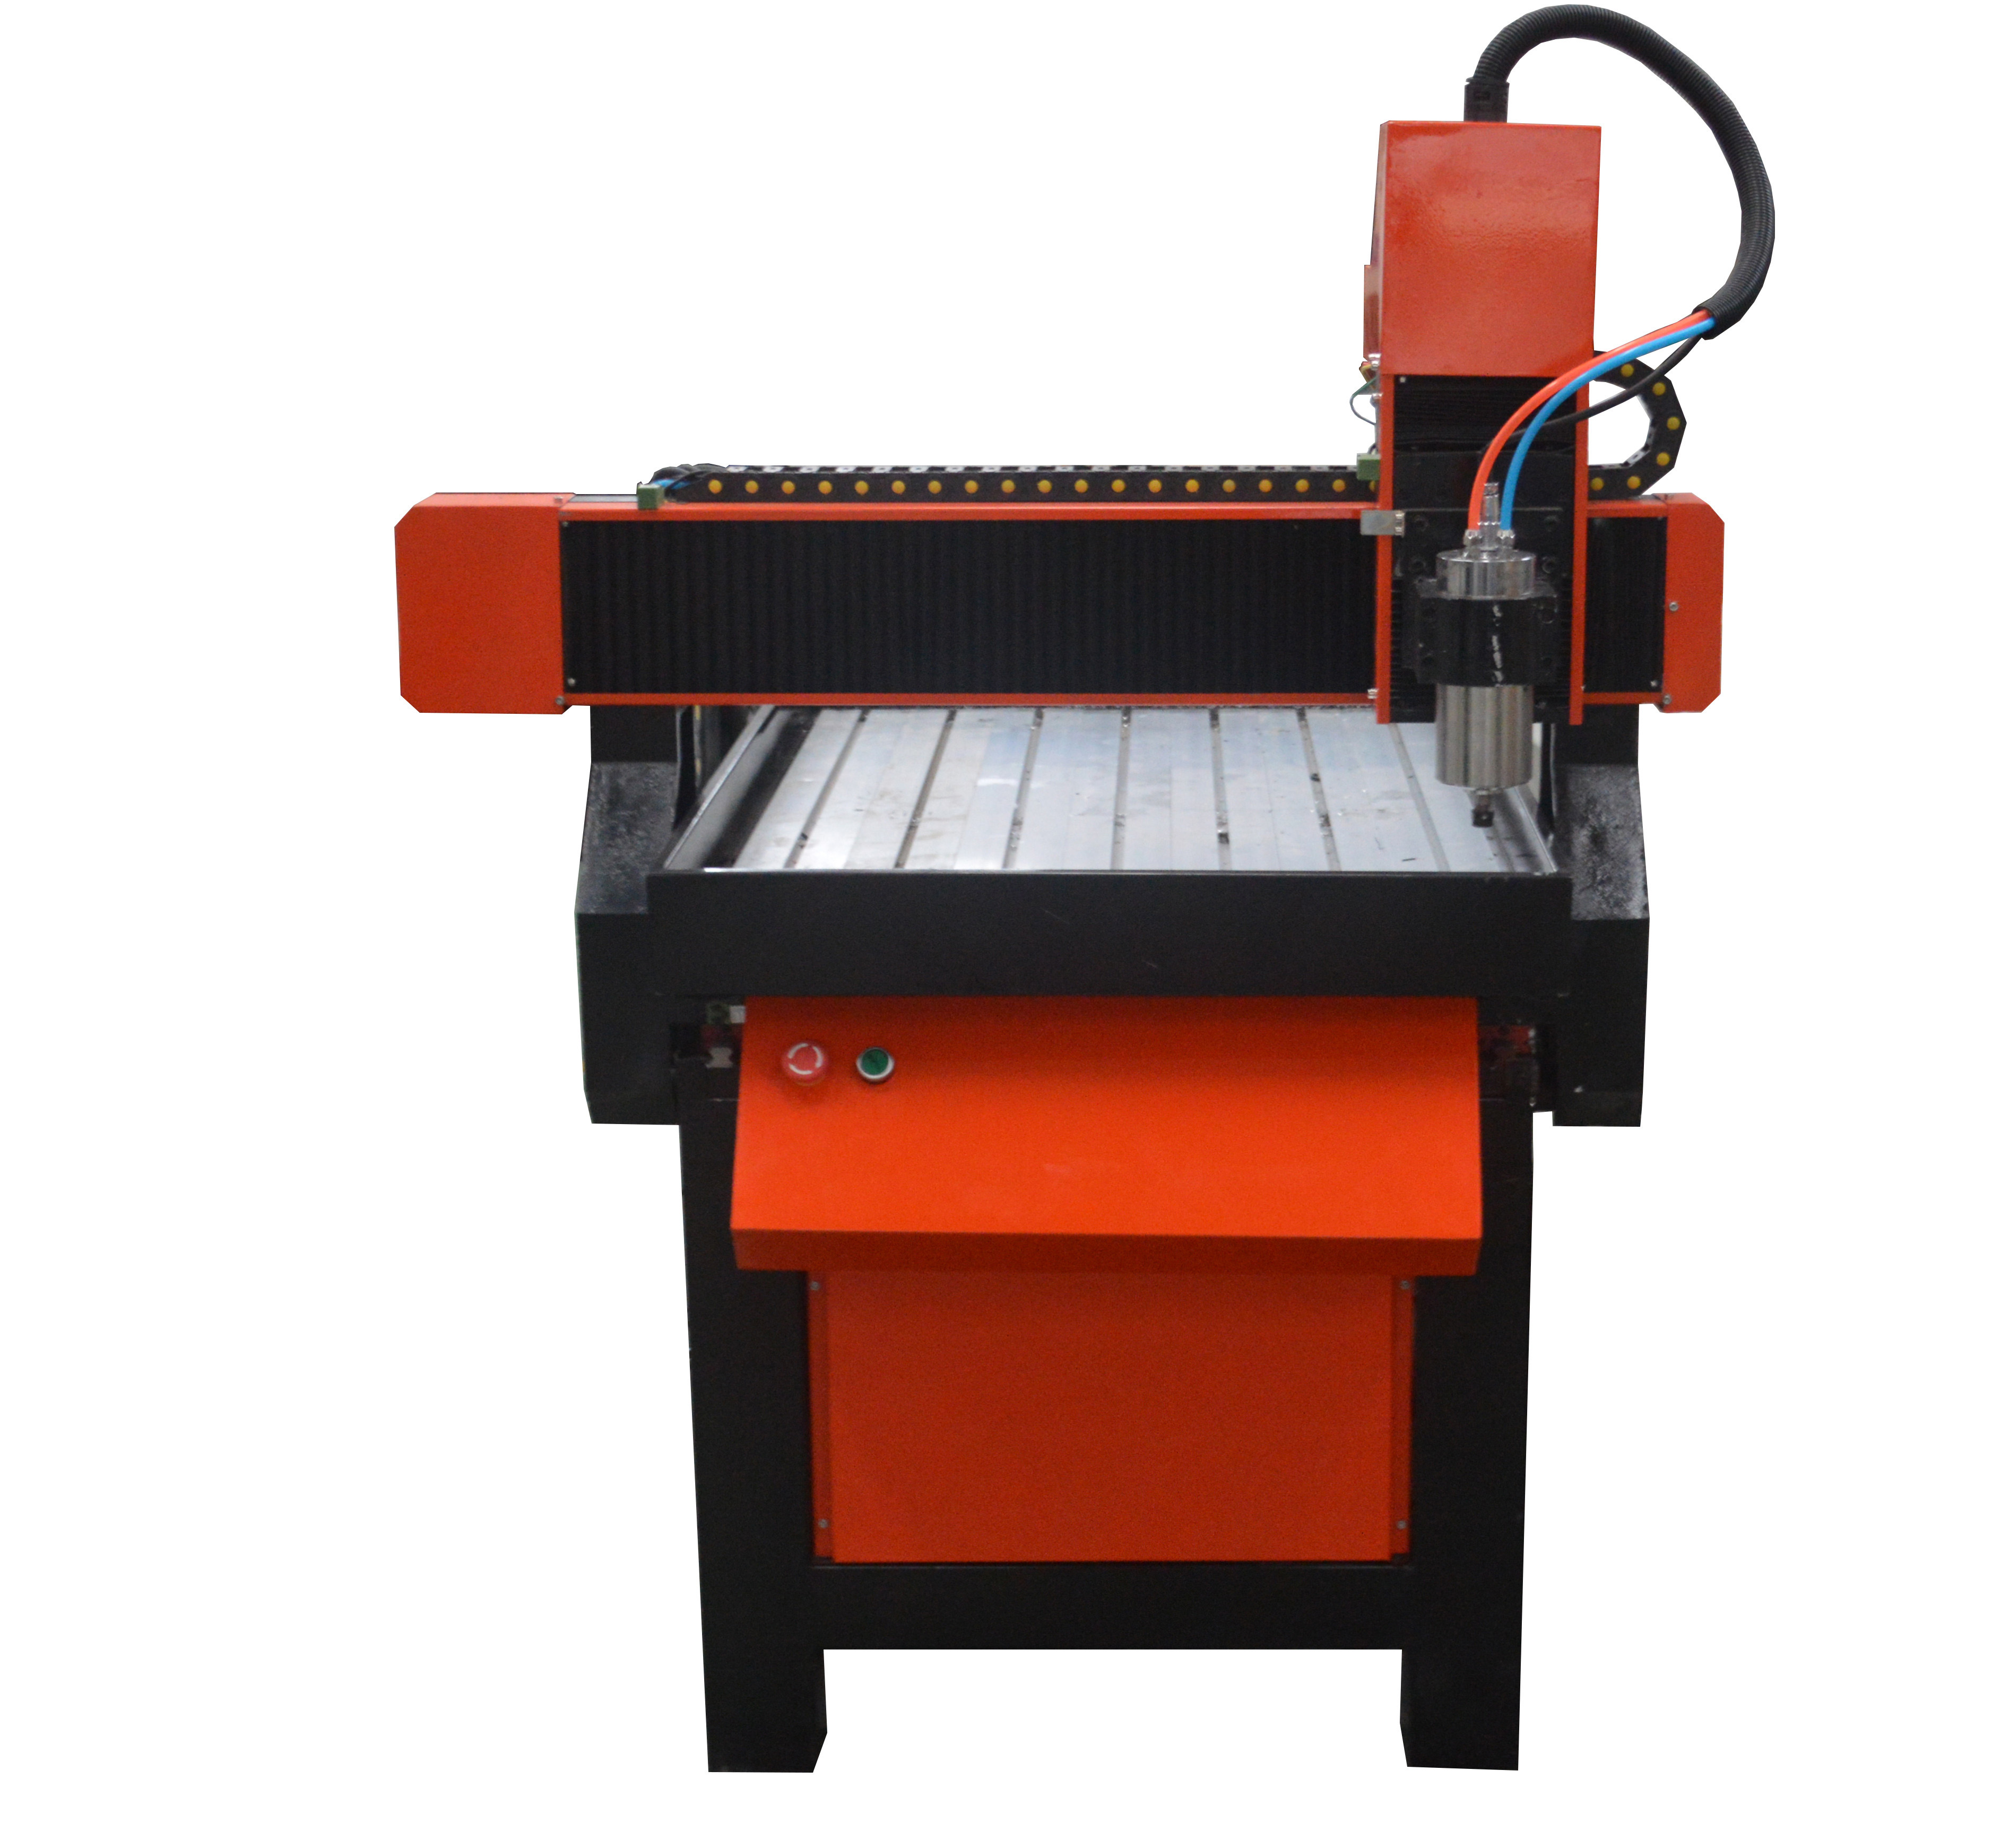 Greatest cnc router 600 <strong>x</strong> 900 High performance 3d wood engraving mini cnc router